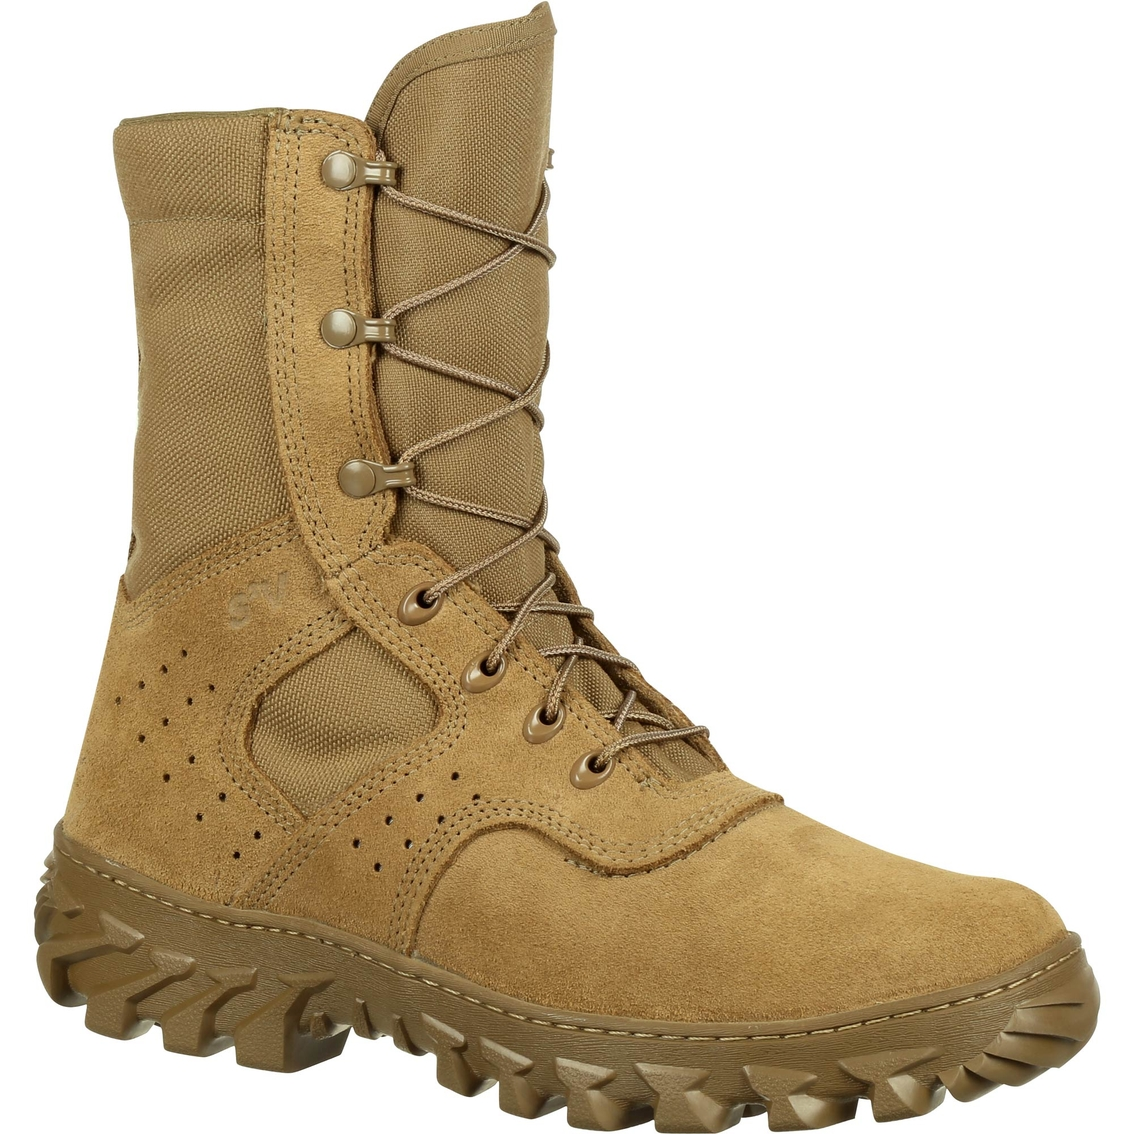 Rocky S2v Enhanced Hot Weather Jungle Boots Coyote Brown Boots